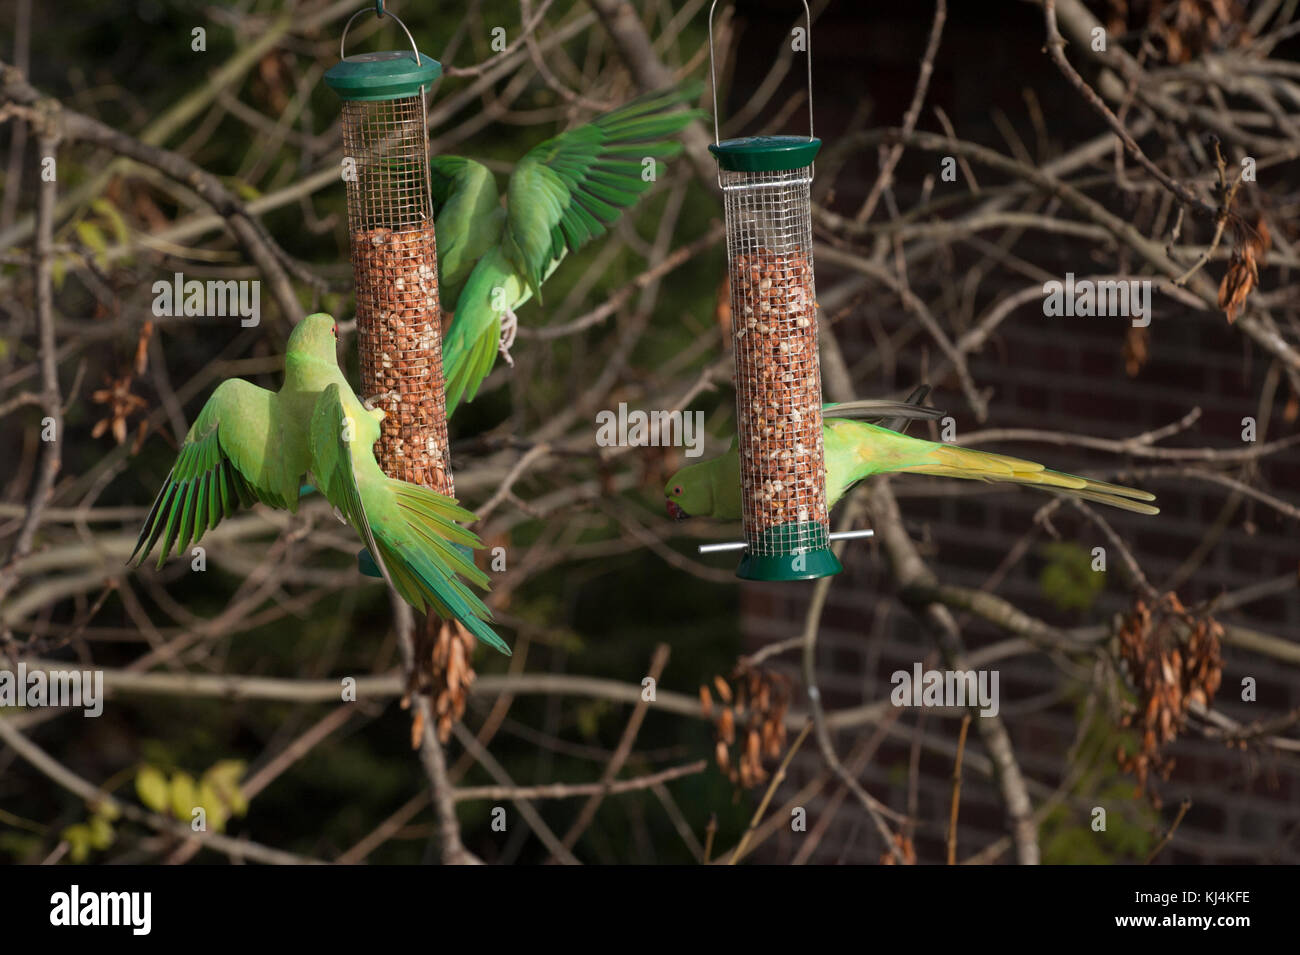 Ring-necked parakeets or Rose-ringed parakeets, (Psittacula krameri),  feeding from bird feeders, London, United Stock Photo